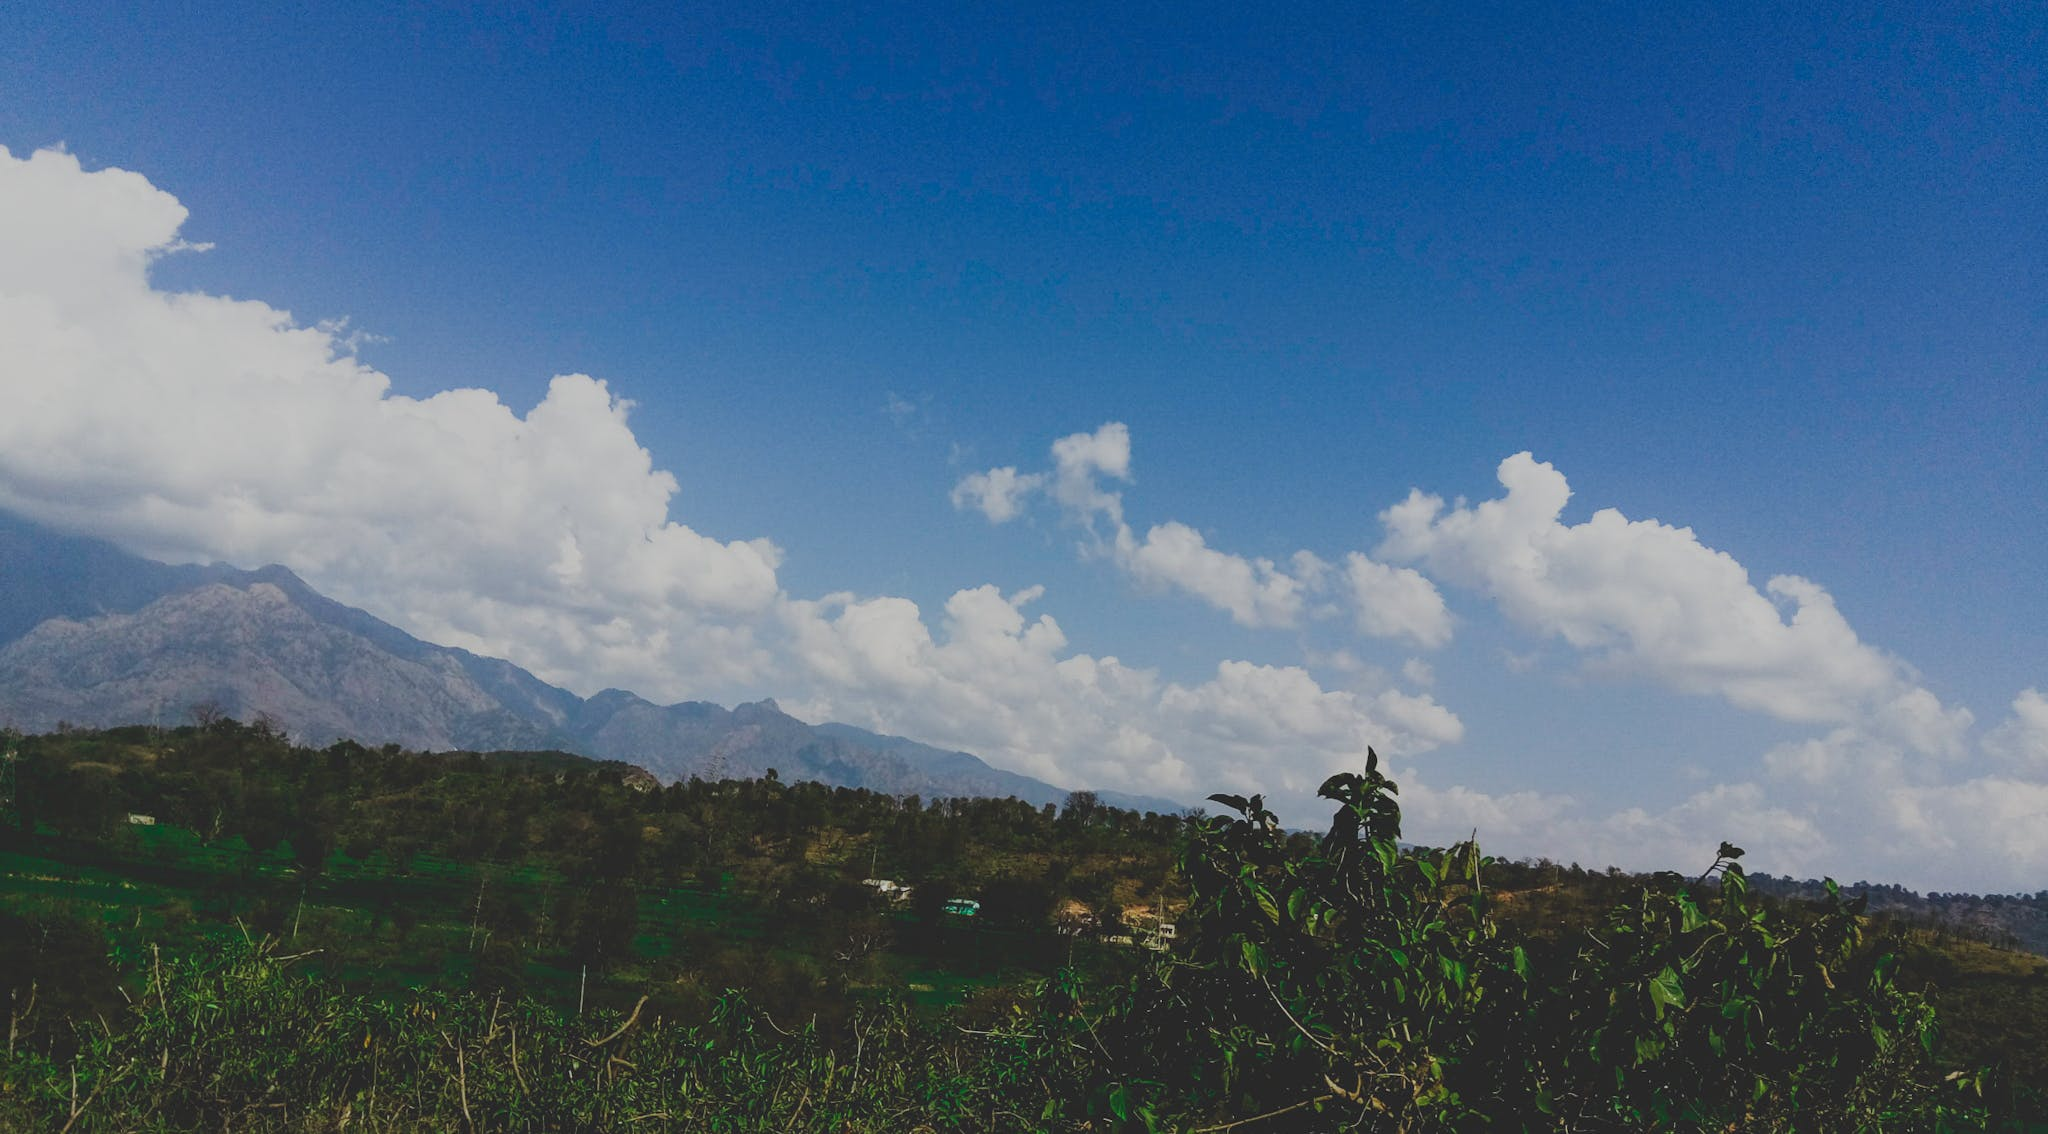 Free stock photo of blue, blue mountains, clouds, dark clouds